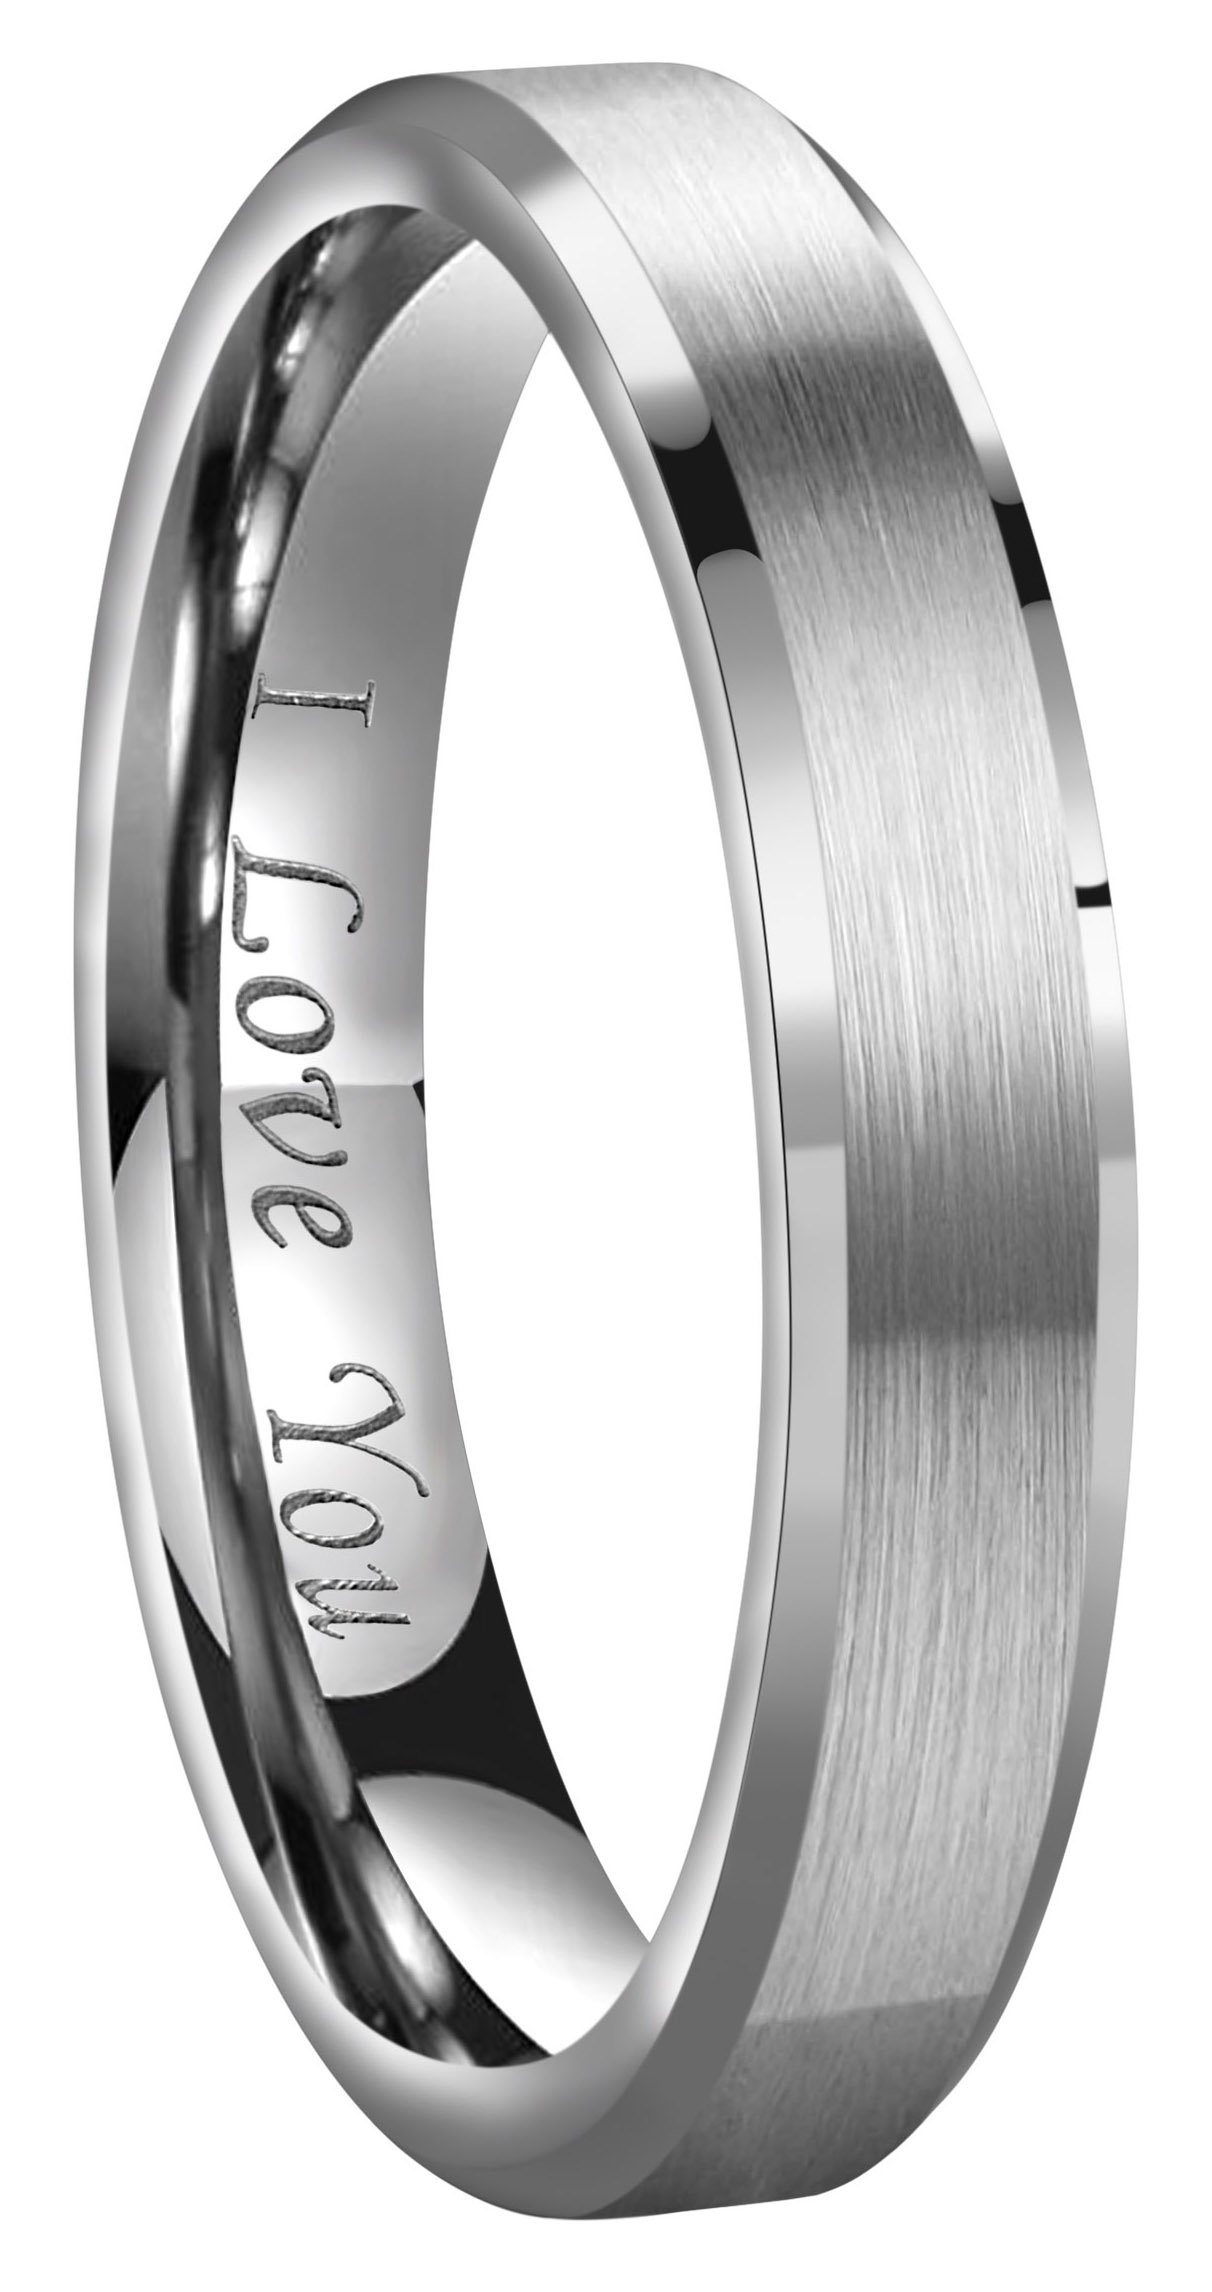 CROWNAL 4mm/6mm/8mm Tungsten Couple Wedding Bands Rings Men Women Brushed Finish Beveled Edges Engraved I Love You Size 4 To 17 (4mm,6)